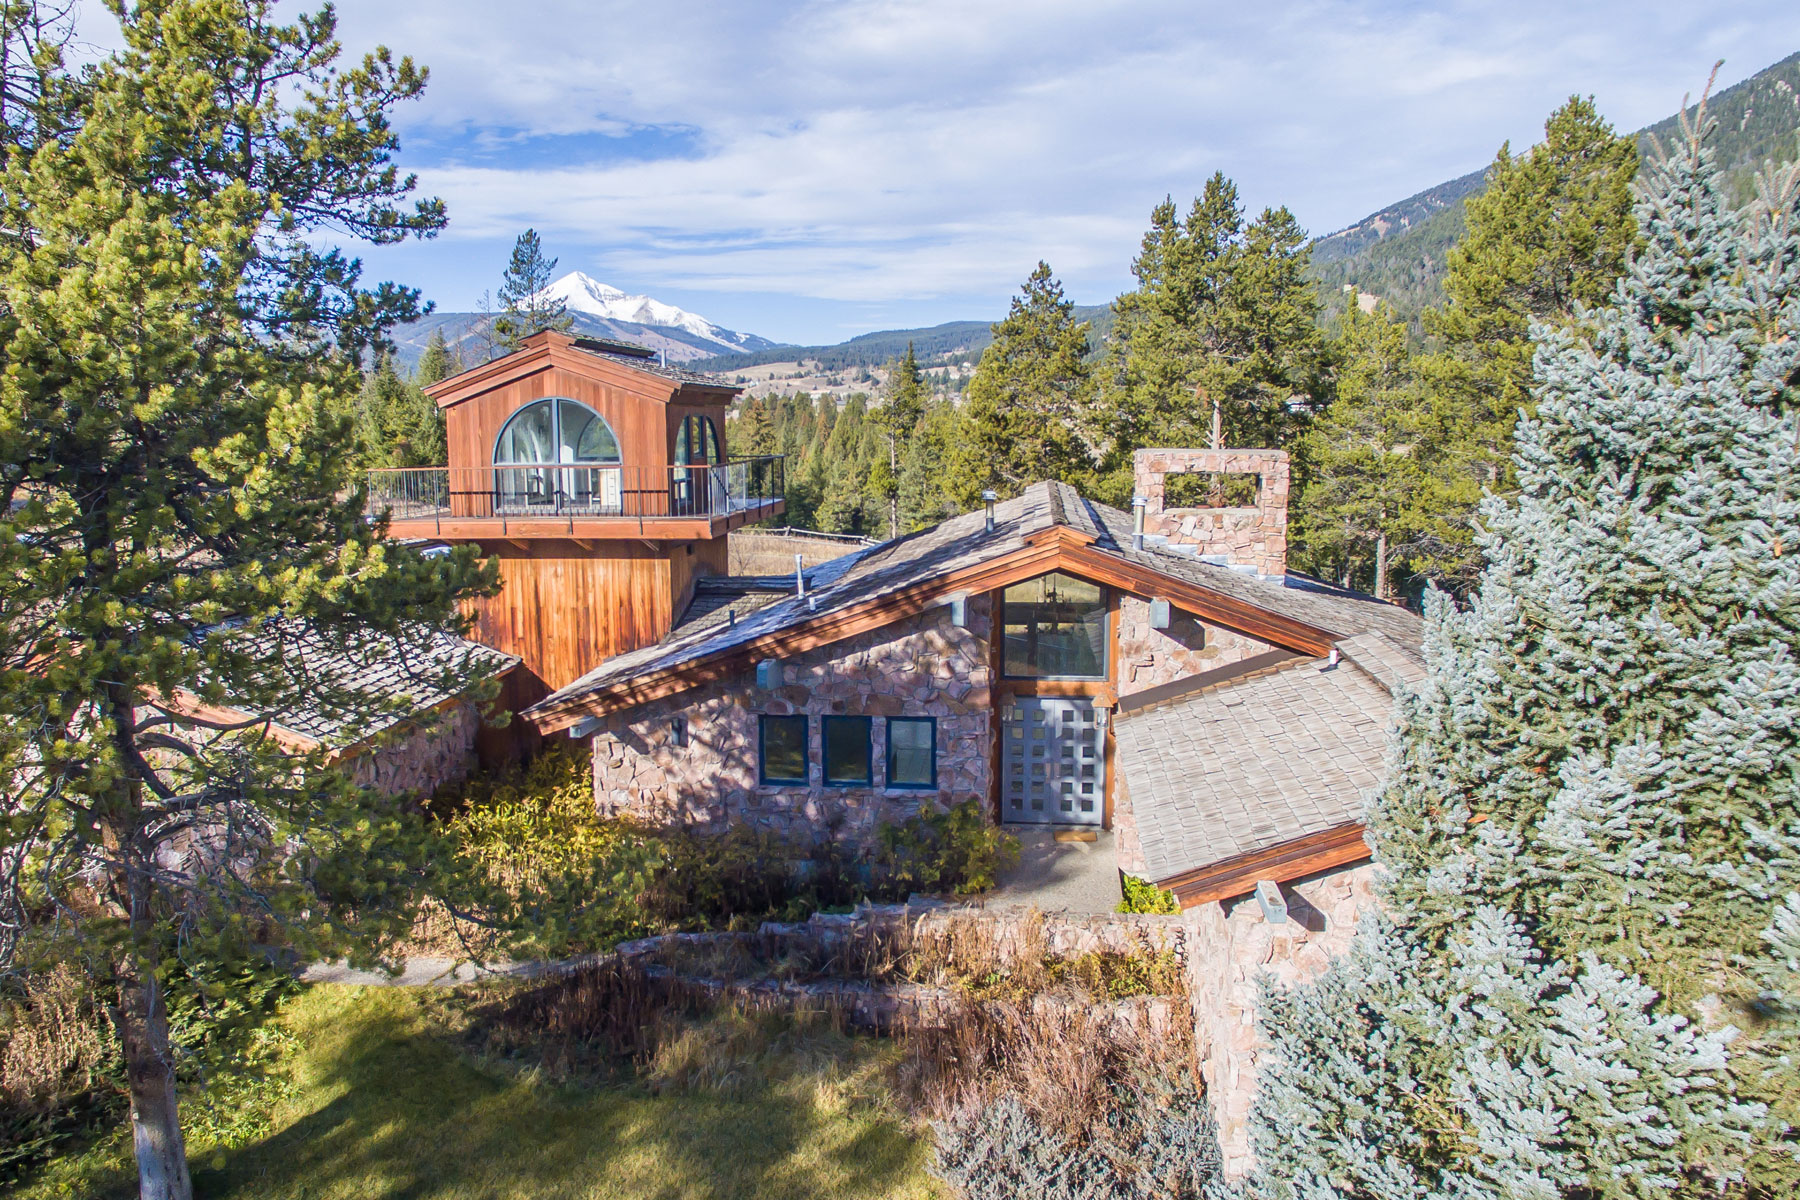 Casa Unifamiliar por un Venta en 5-B Ranch 942 Lone Mountain Trail Big Sky, Montana, 59716 Estados Unidos